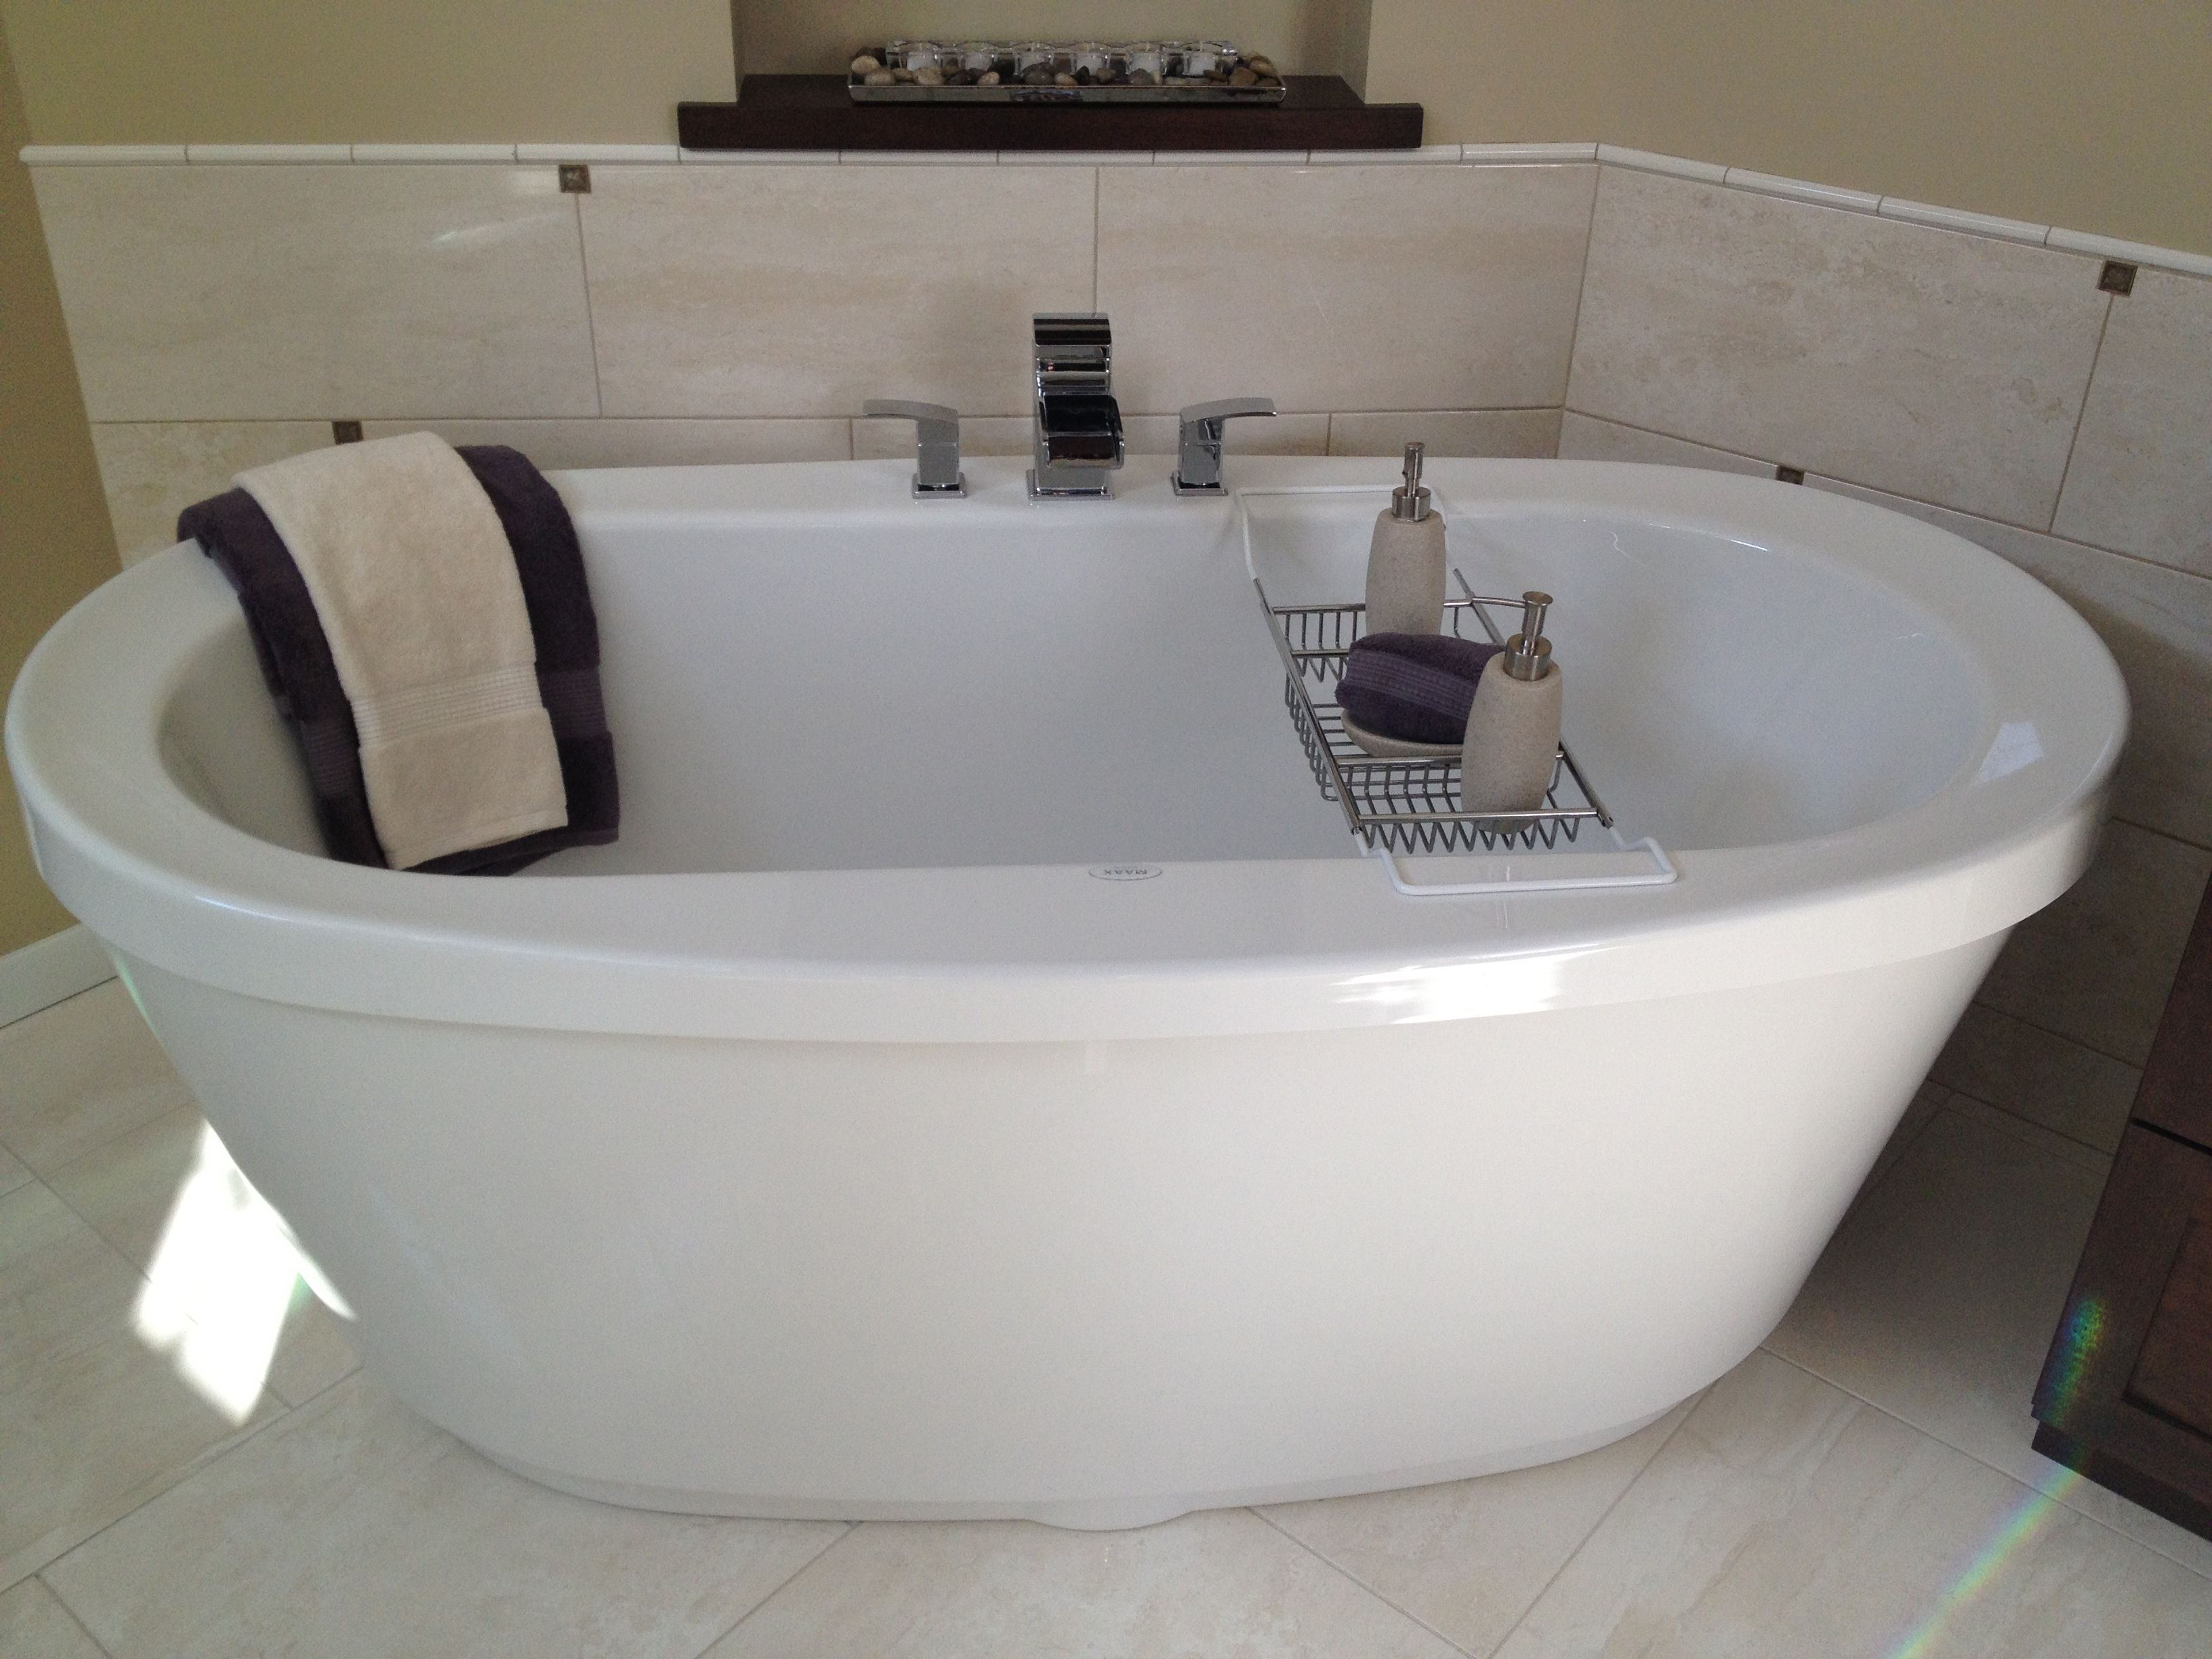 Maxx tub...THE MOST comfortable tub EVER!!! | Home: Bath | Pinterest ...